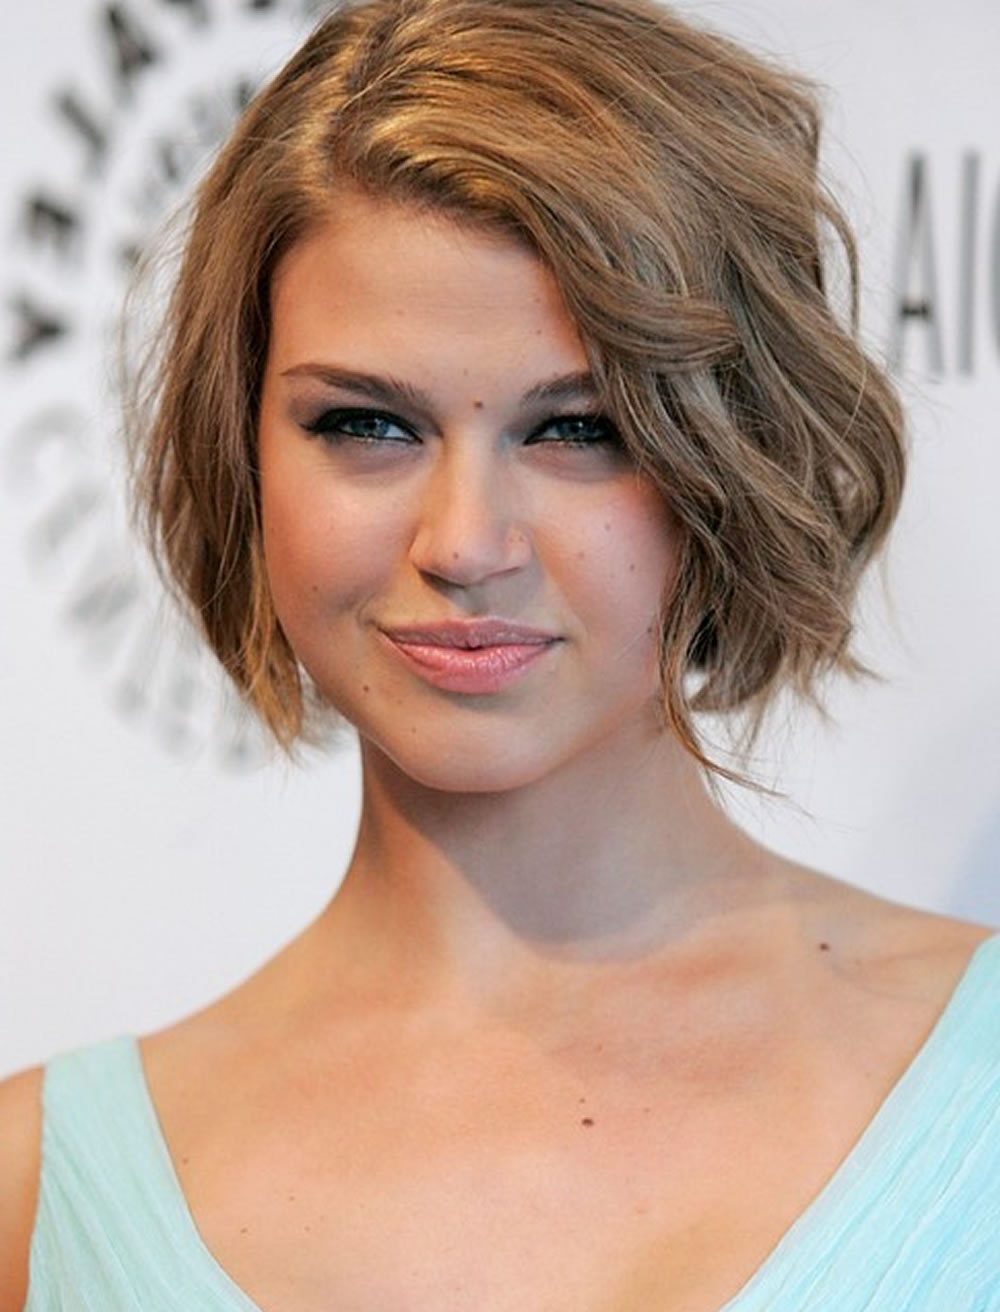 The Best 30 Short Bob Haircuts – 2018 Short Hairstyles For Women Within Short Haircuts For Women With Oval Faces (View 20 of 25)